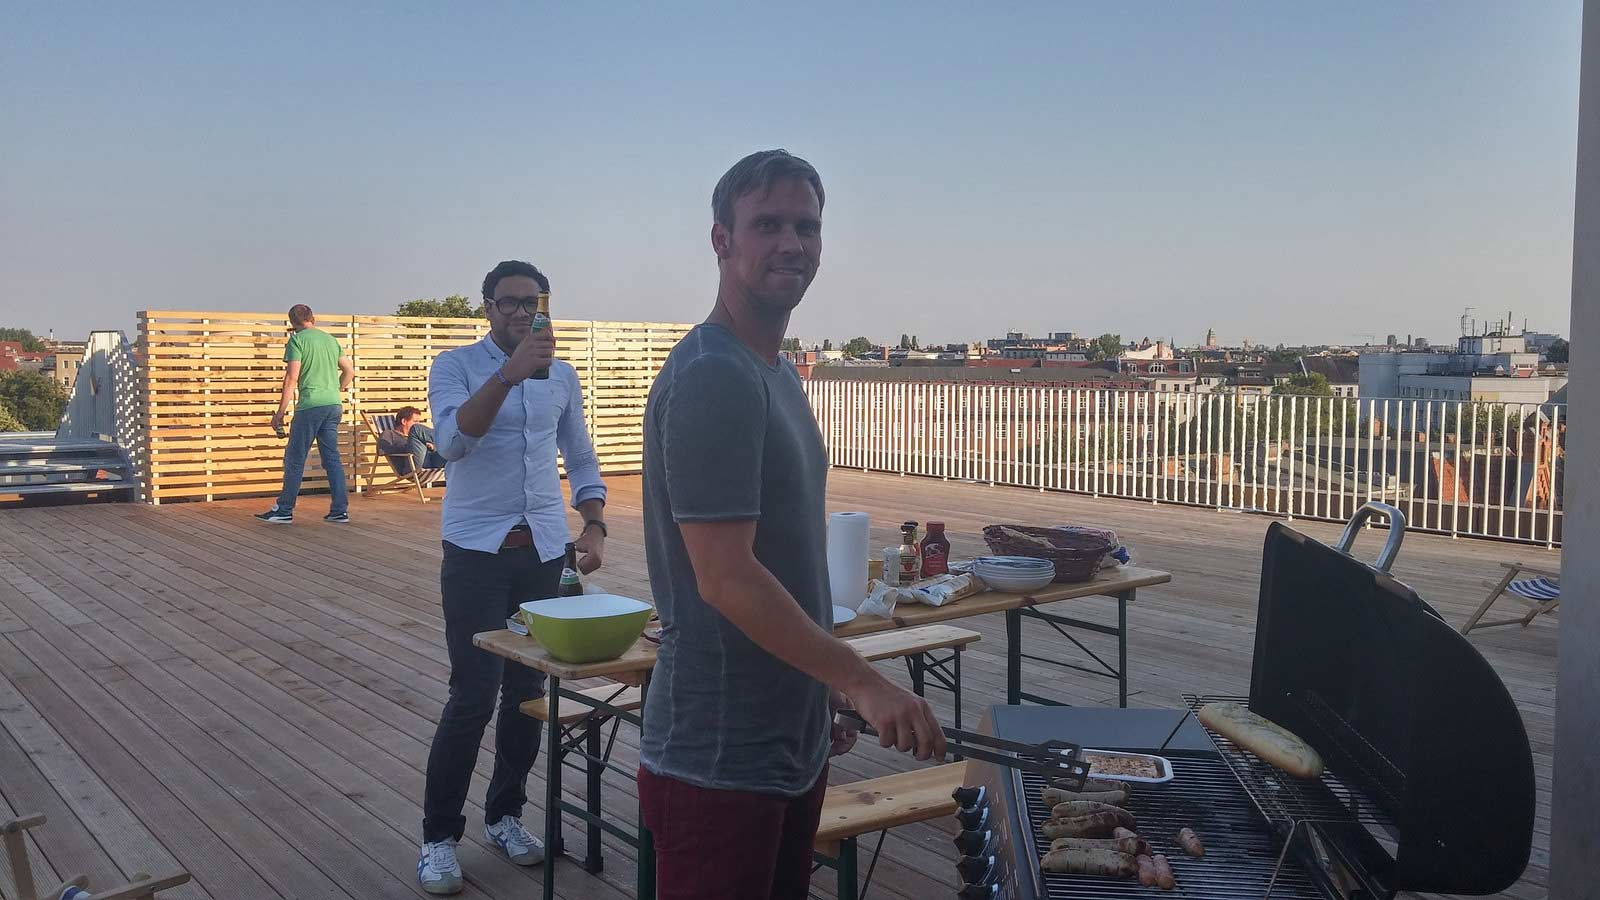 Barbeque at Erento